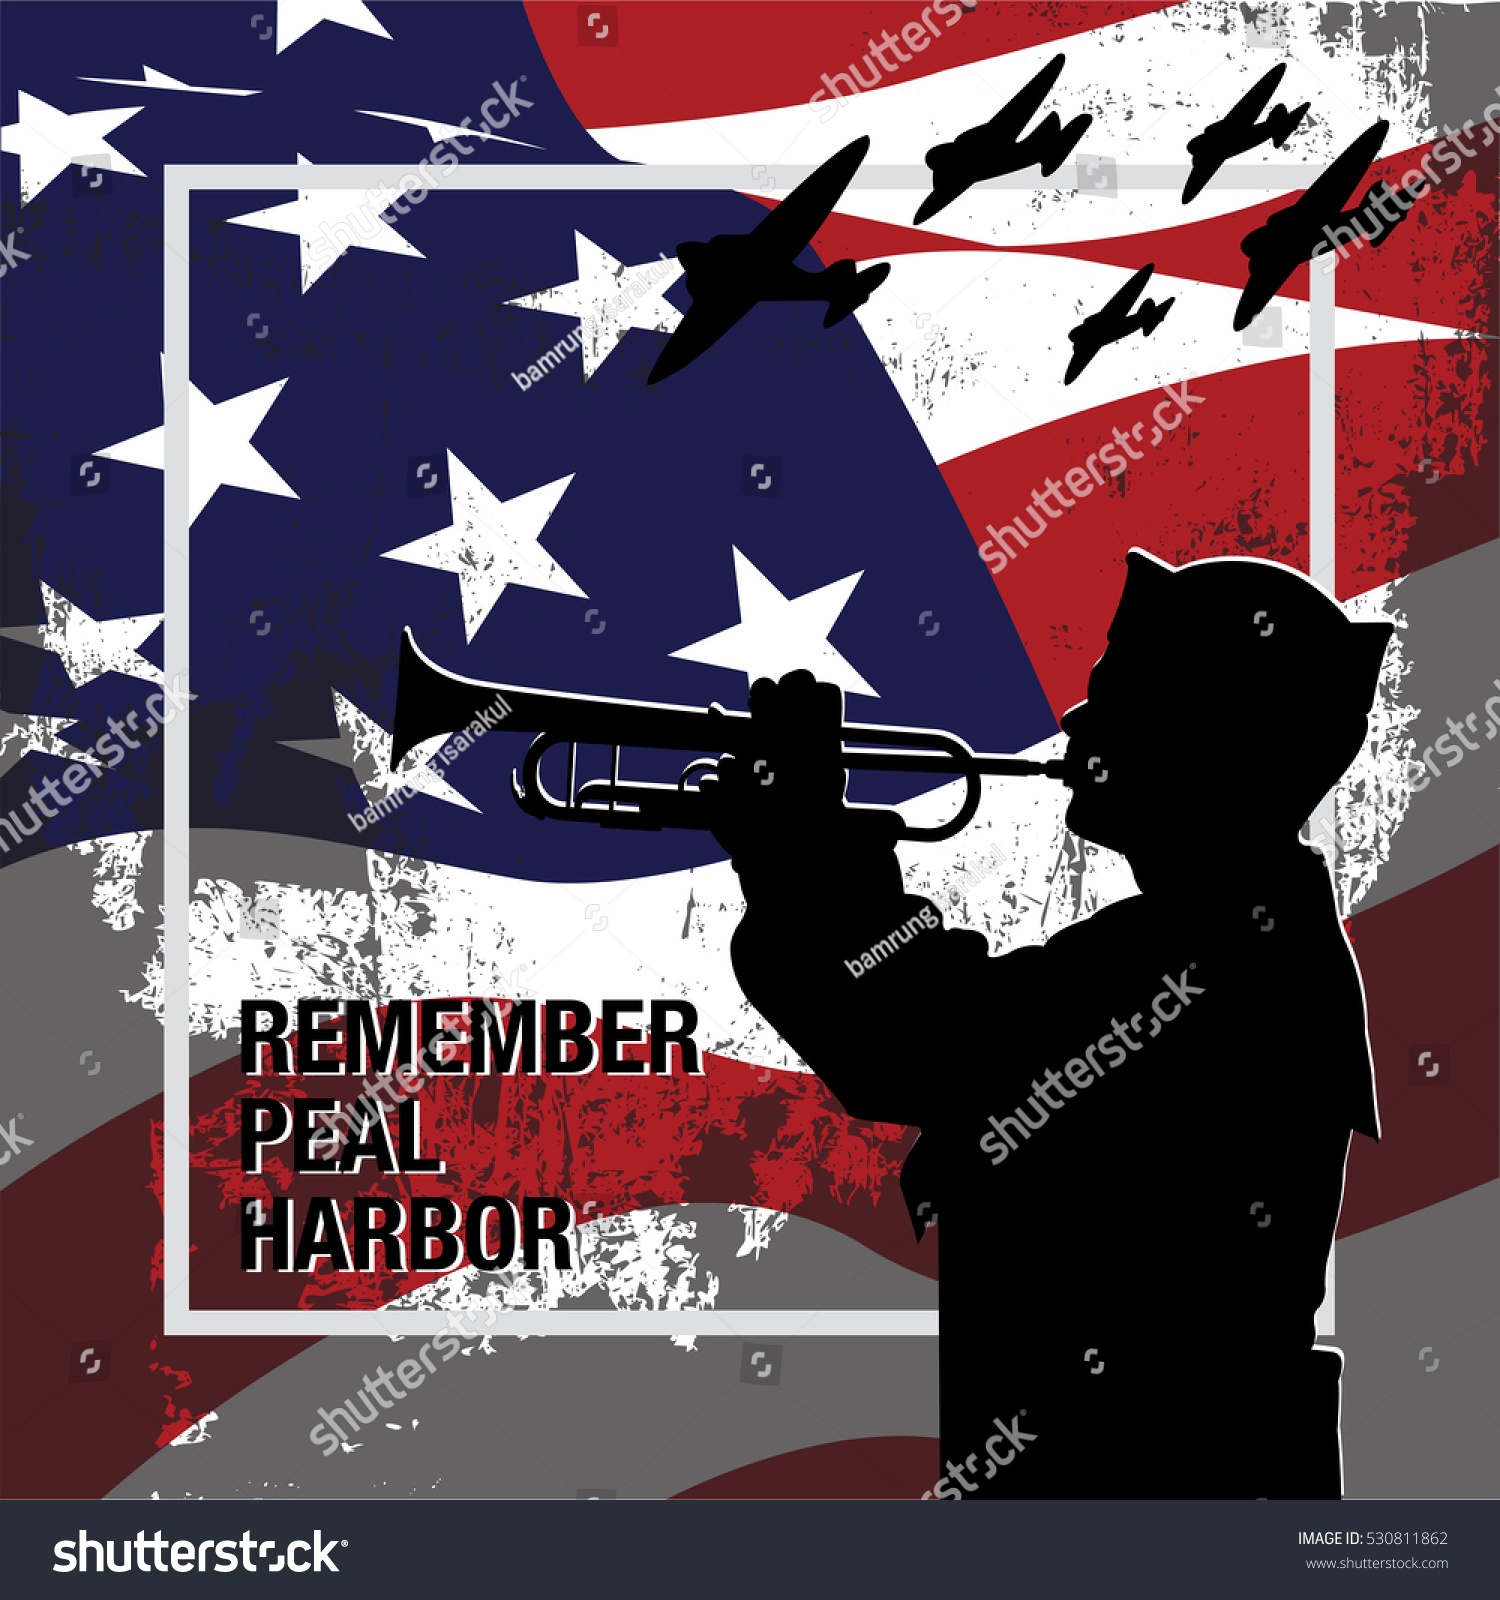 National Pearl Harbor Remembrance Day Stock Vector